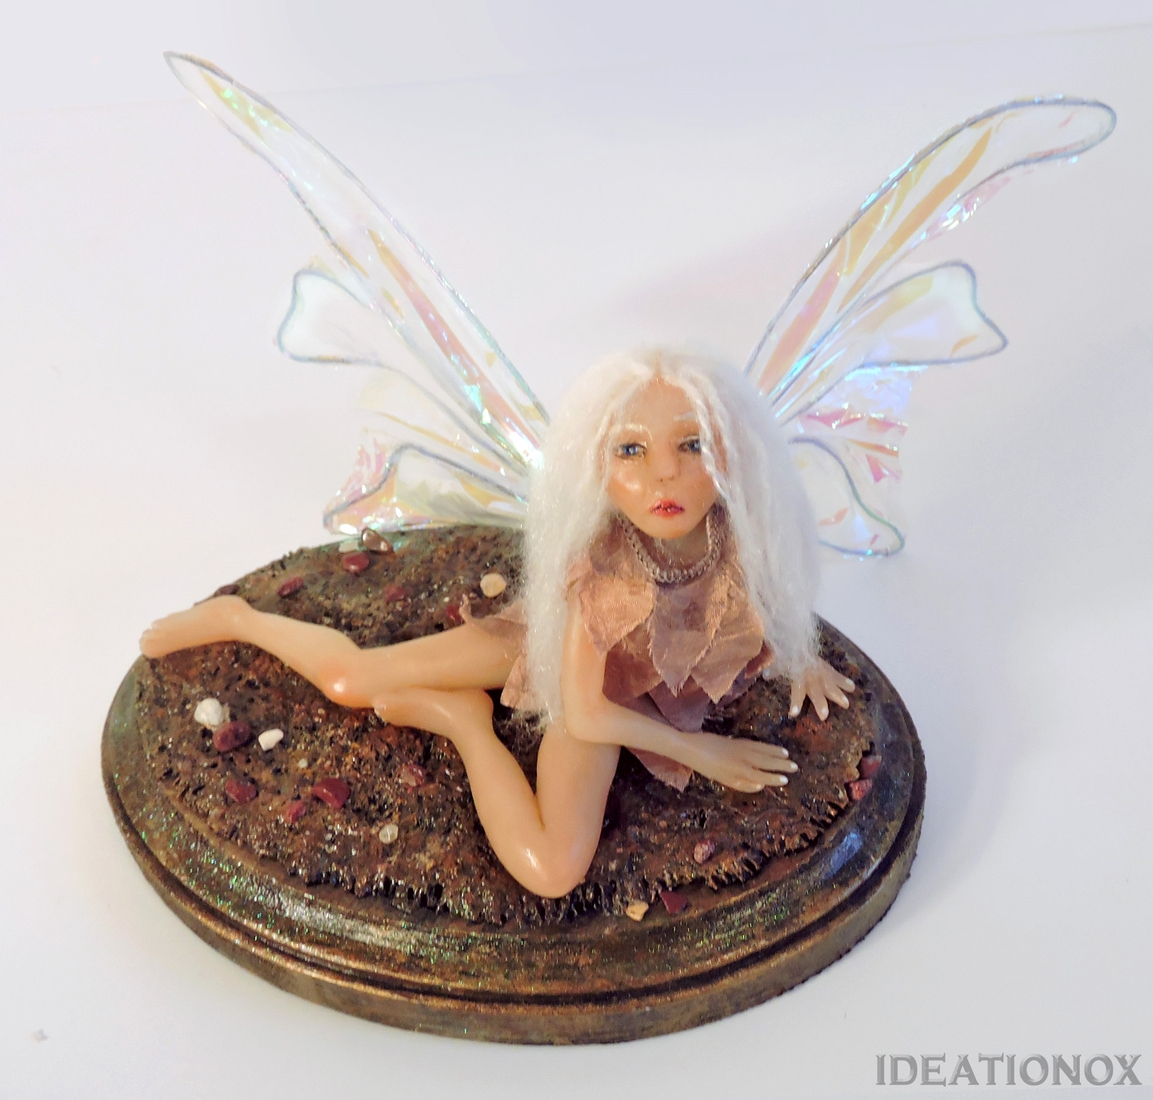 15-Fairy-Statue-Alyson-Tabbitha-IDEATIONOX-Labyrinth-Fan-Art-Dolls-Statues-and-Jewelry-www-designstack-co